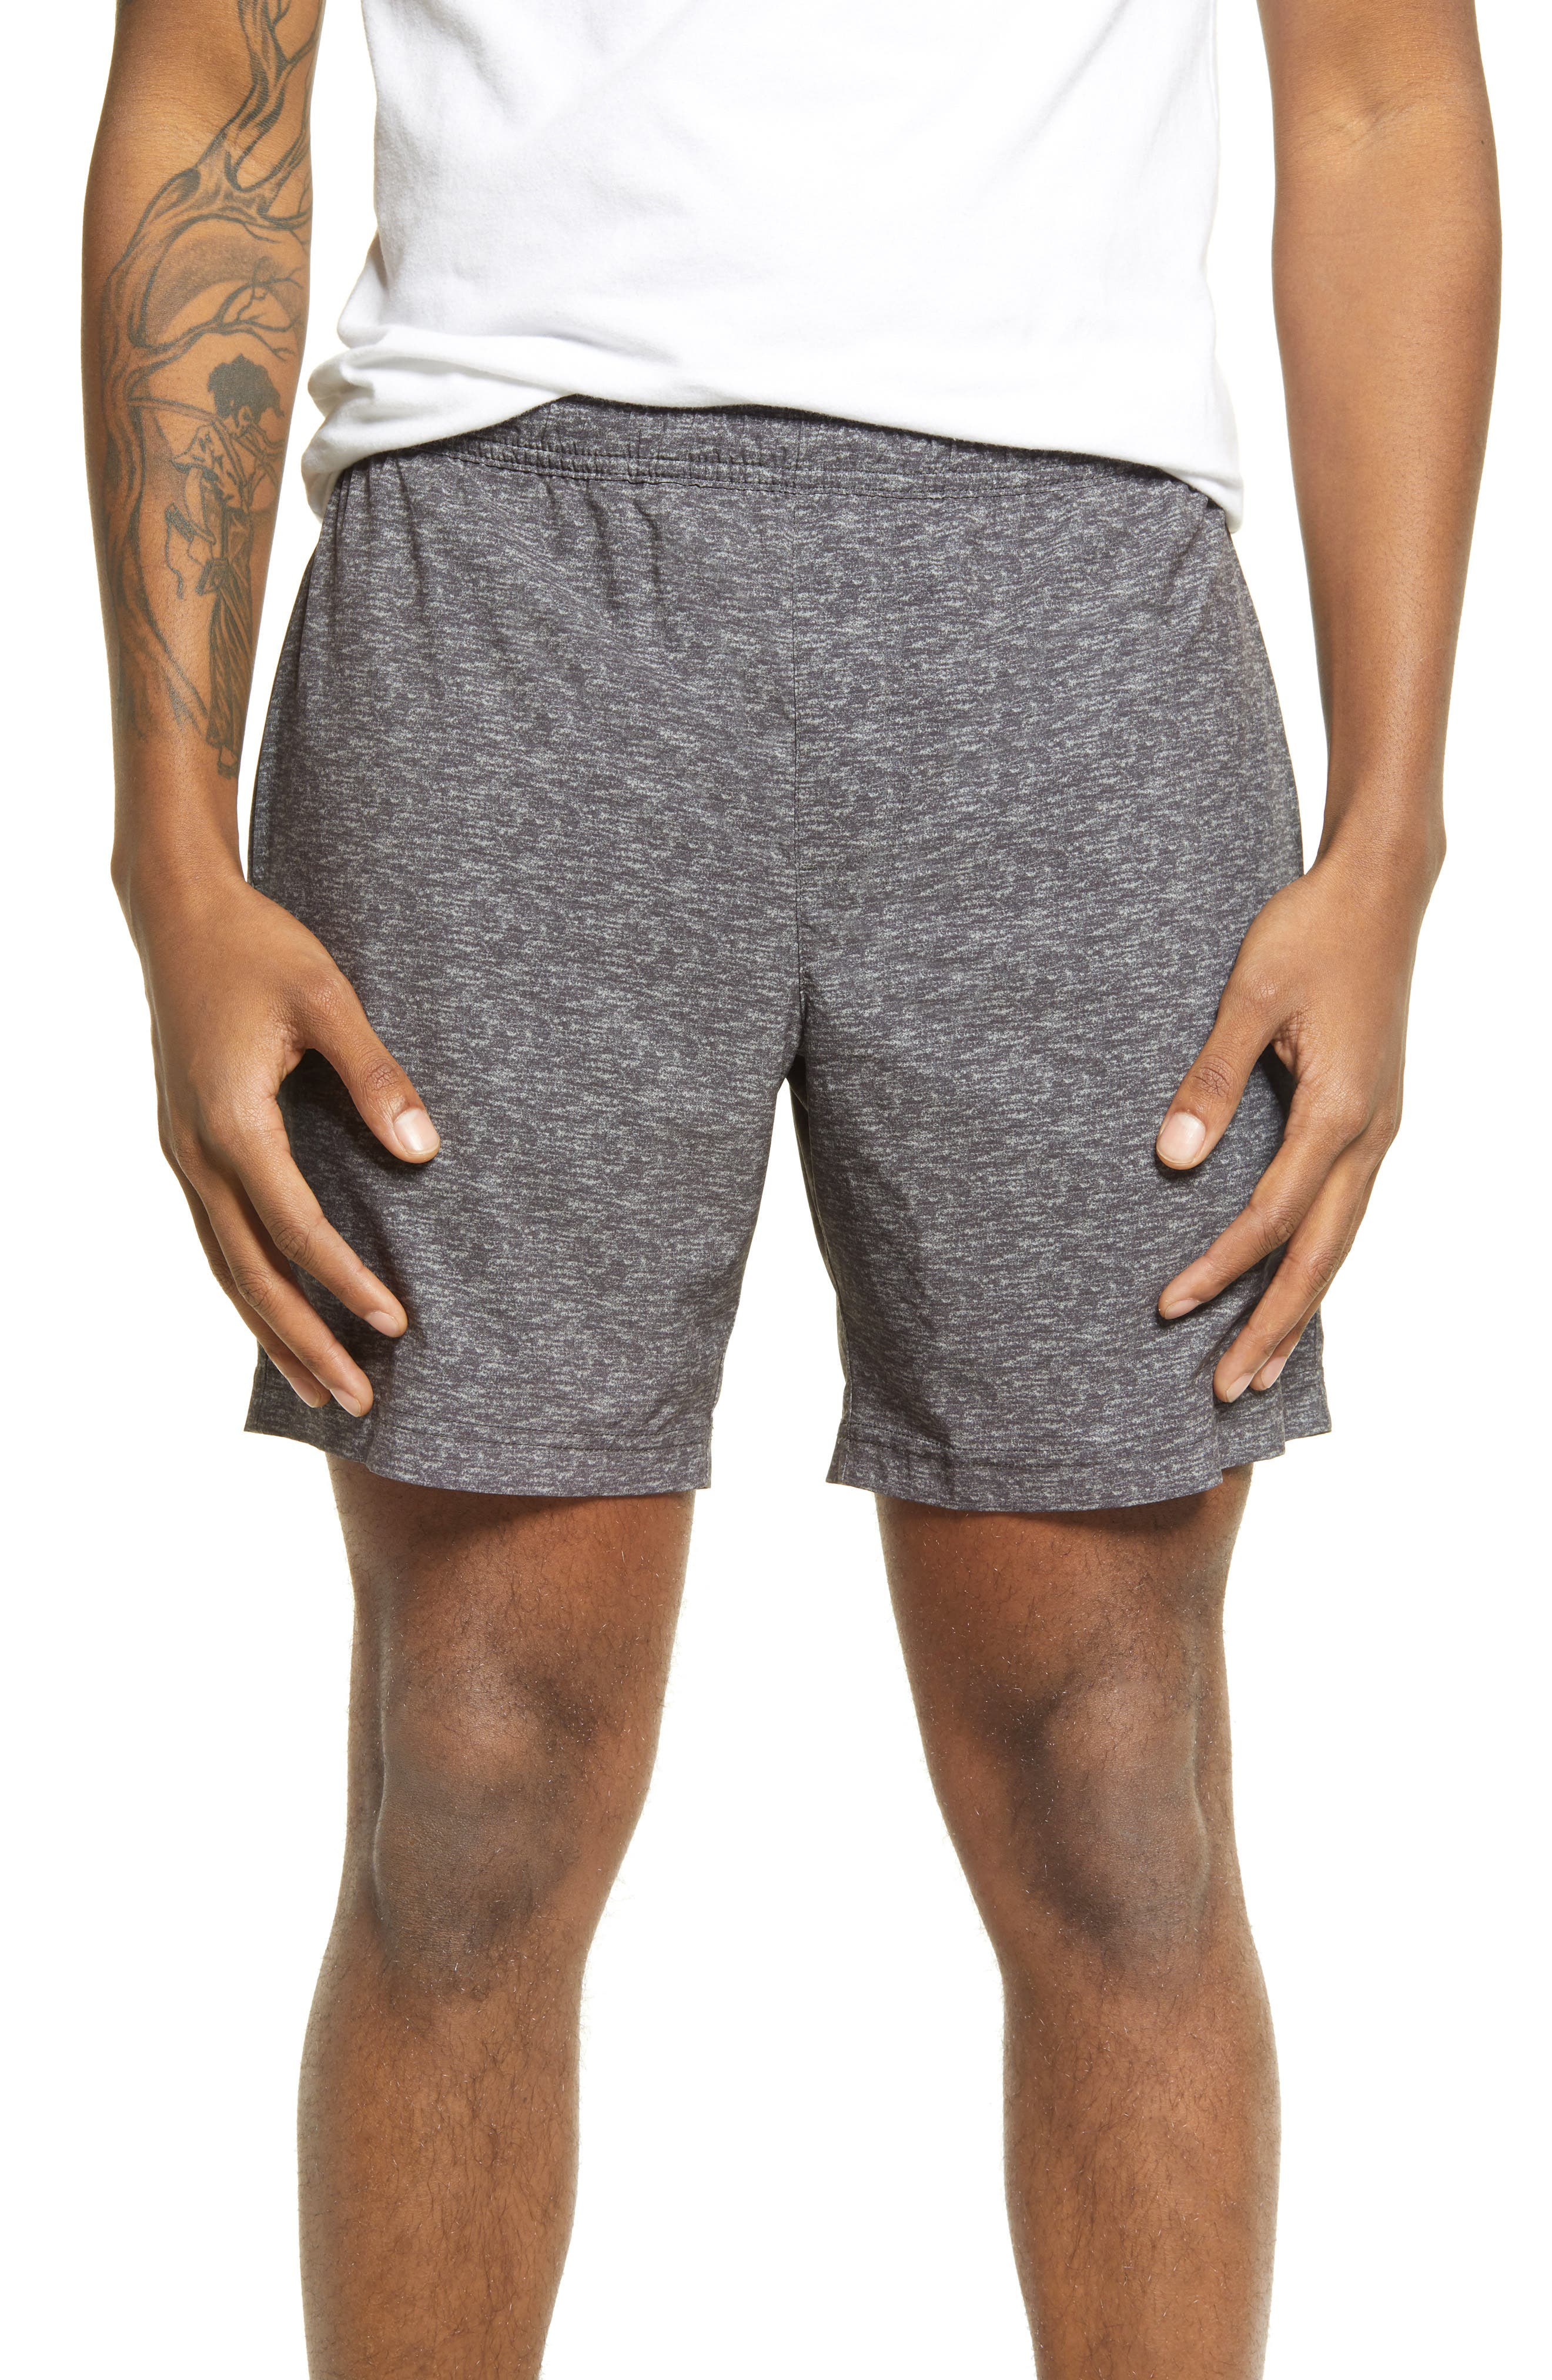 The Quests Athletic Shorts